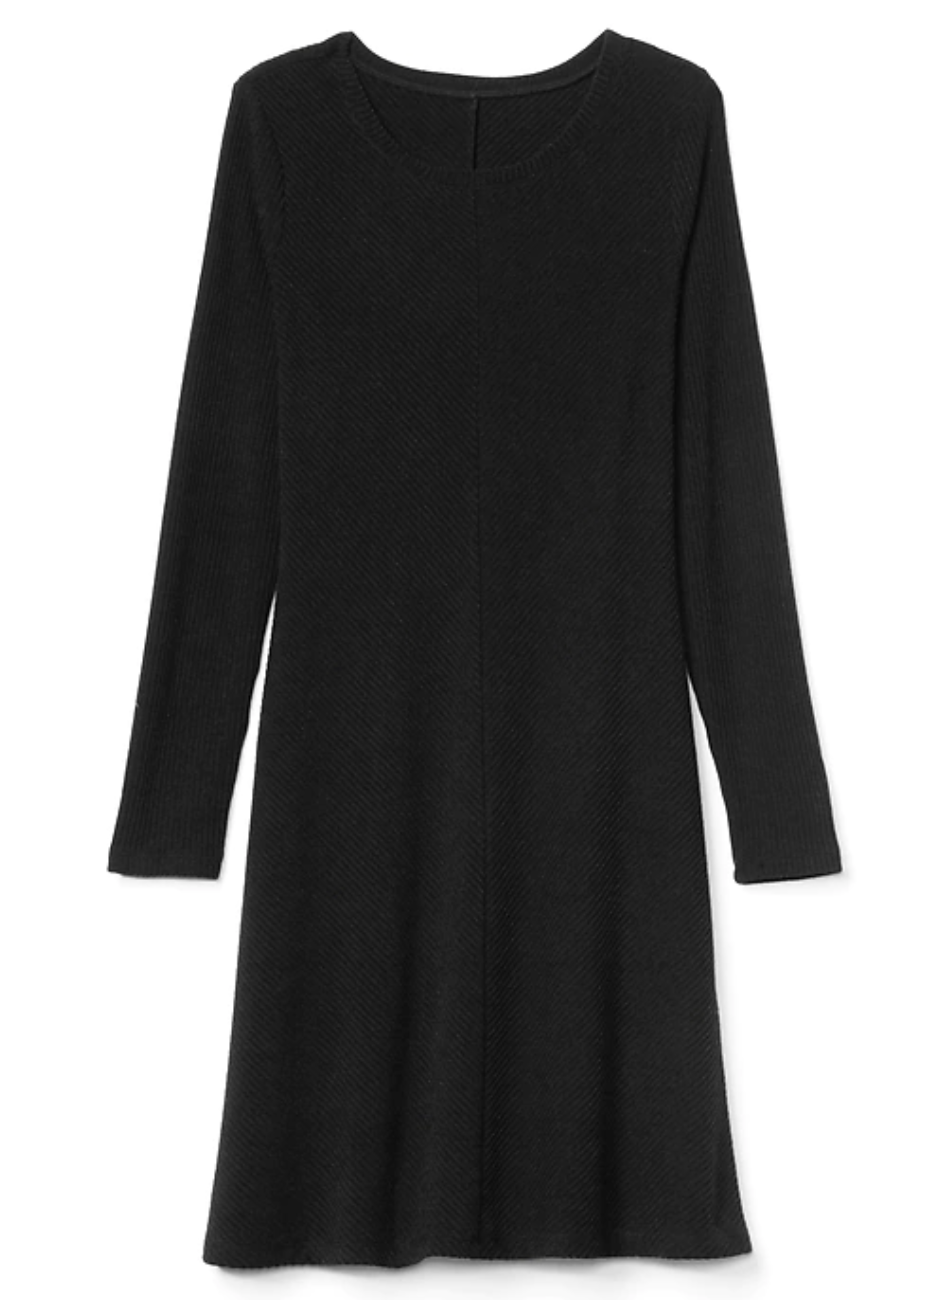 gap ribbed swing dress.png